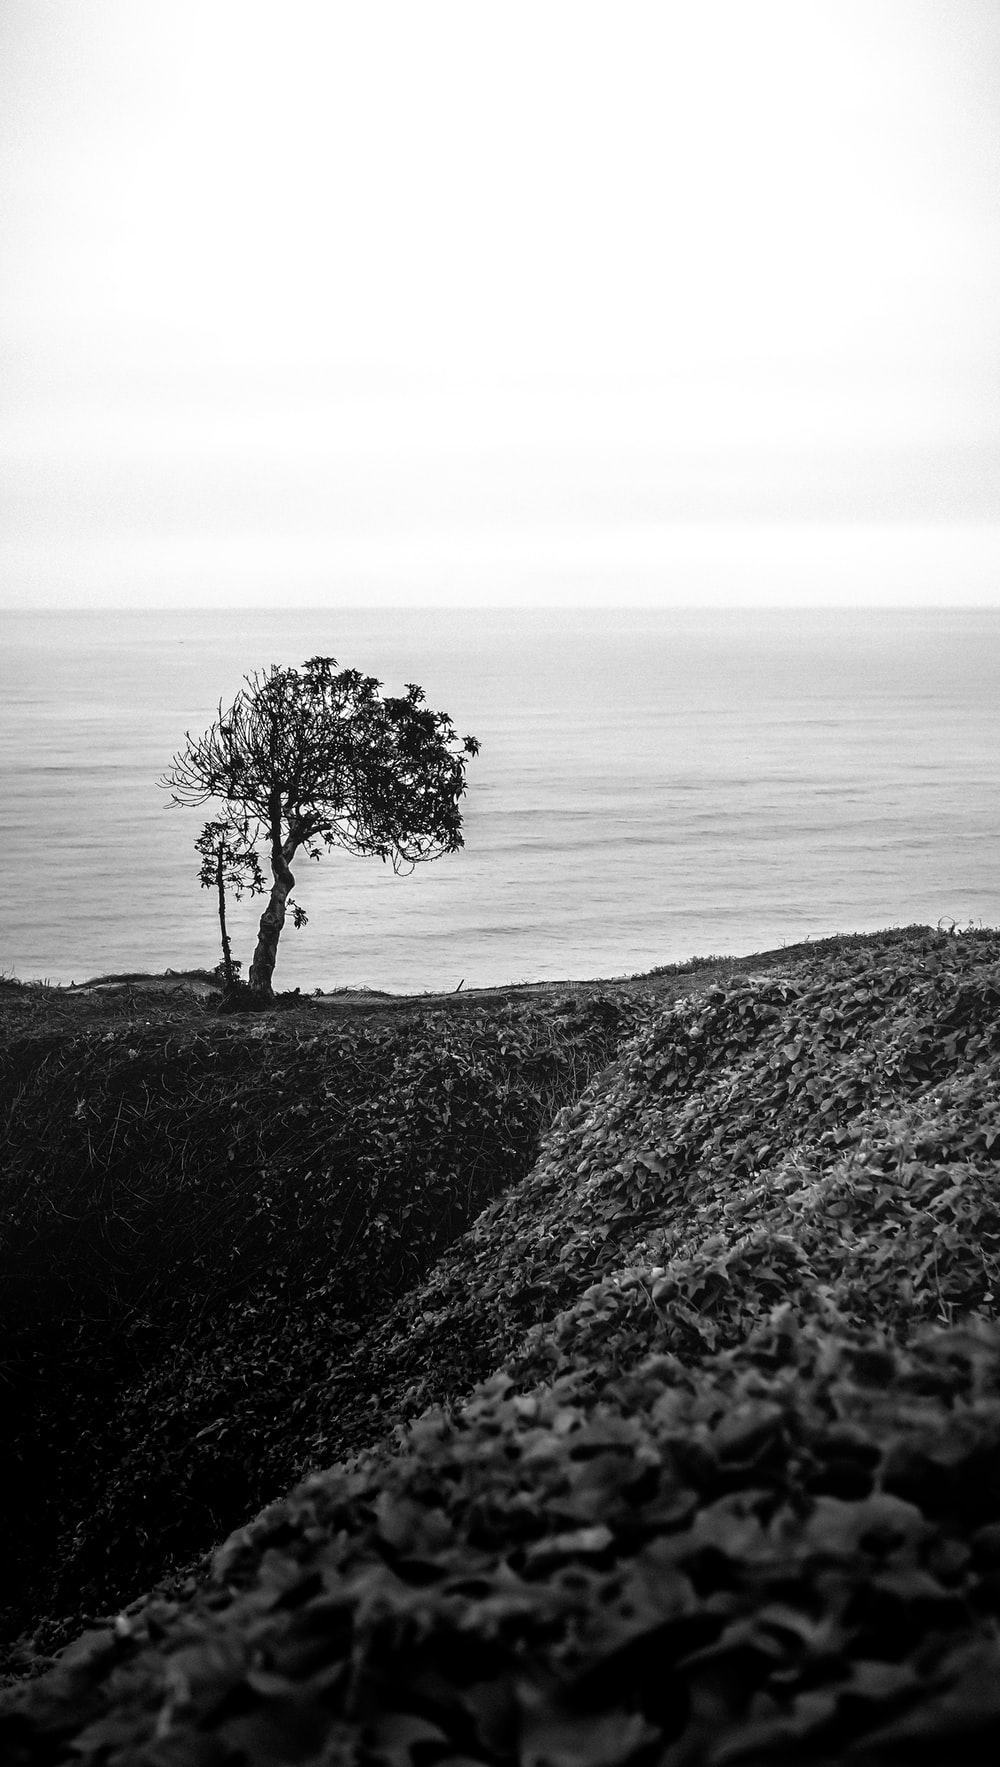 grayscale photo of tree on hill near body of water